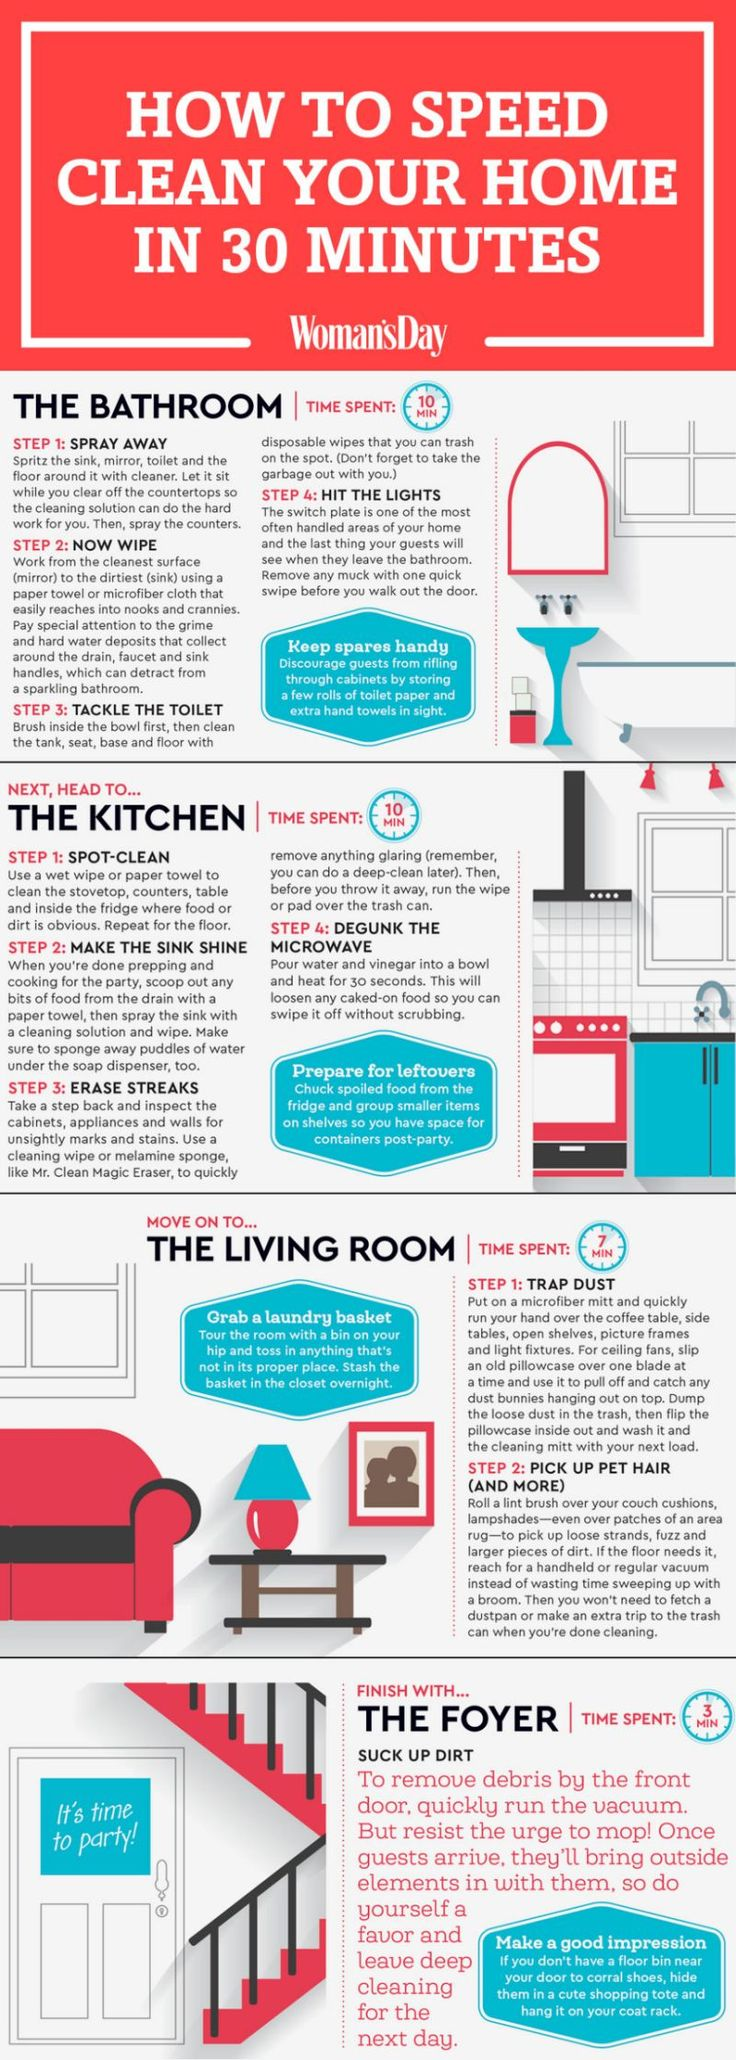 "Save these easy cleaning tips for later, and follow <a rel=""nofollow"" href=""https://www.pinterest.com/womansday/"">Woman's Day on Pinterest</a> for more great ideas. <span></span>"